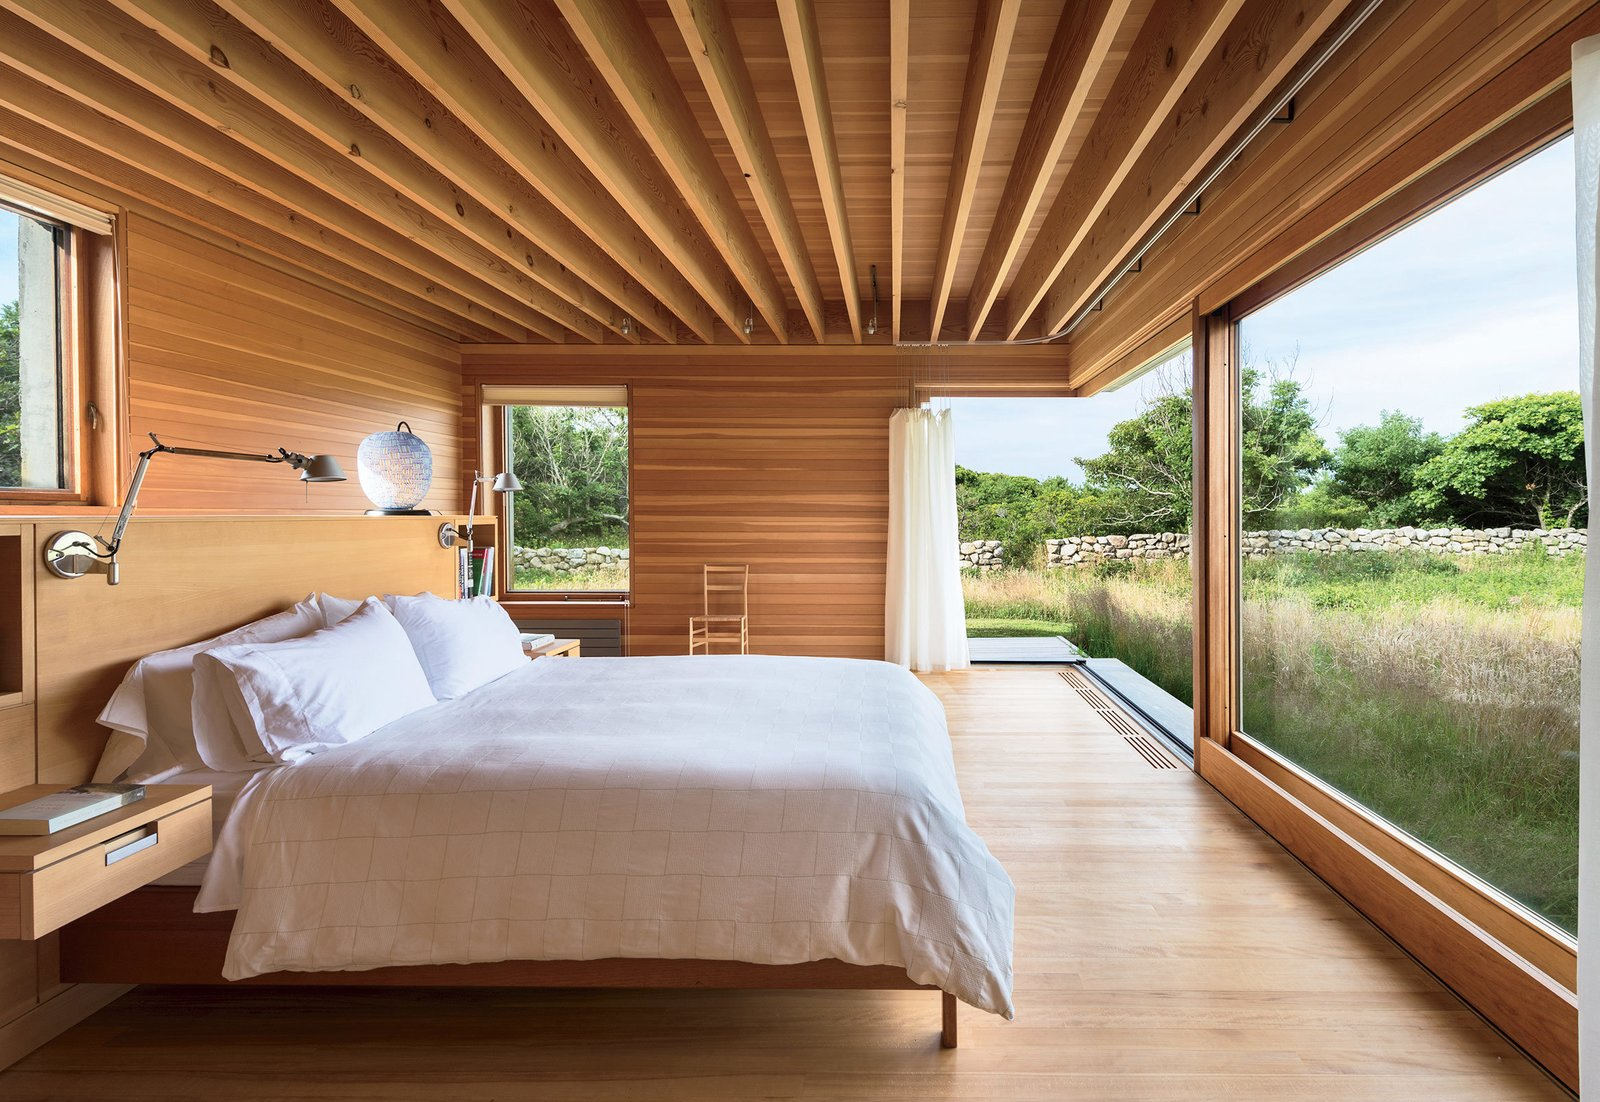 Large windows and sliding doors with maximal operability are placed throughout, including the master bedroom, where expansive lift-and-slide mechanisms line three exterior walls. The room is furnished by a custom mahogany headboard and bed frame by Larry Hepler and a glass Murano lamp by Massimiliano Schiavon. Tagged: Bedroom, Bed, Wall Lighting, and Medium Hardwood Floor.  Photo 8 of 11 in Six Concrete Boxes Make a Jaw-Dropping Martha's Vineyard Home